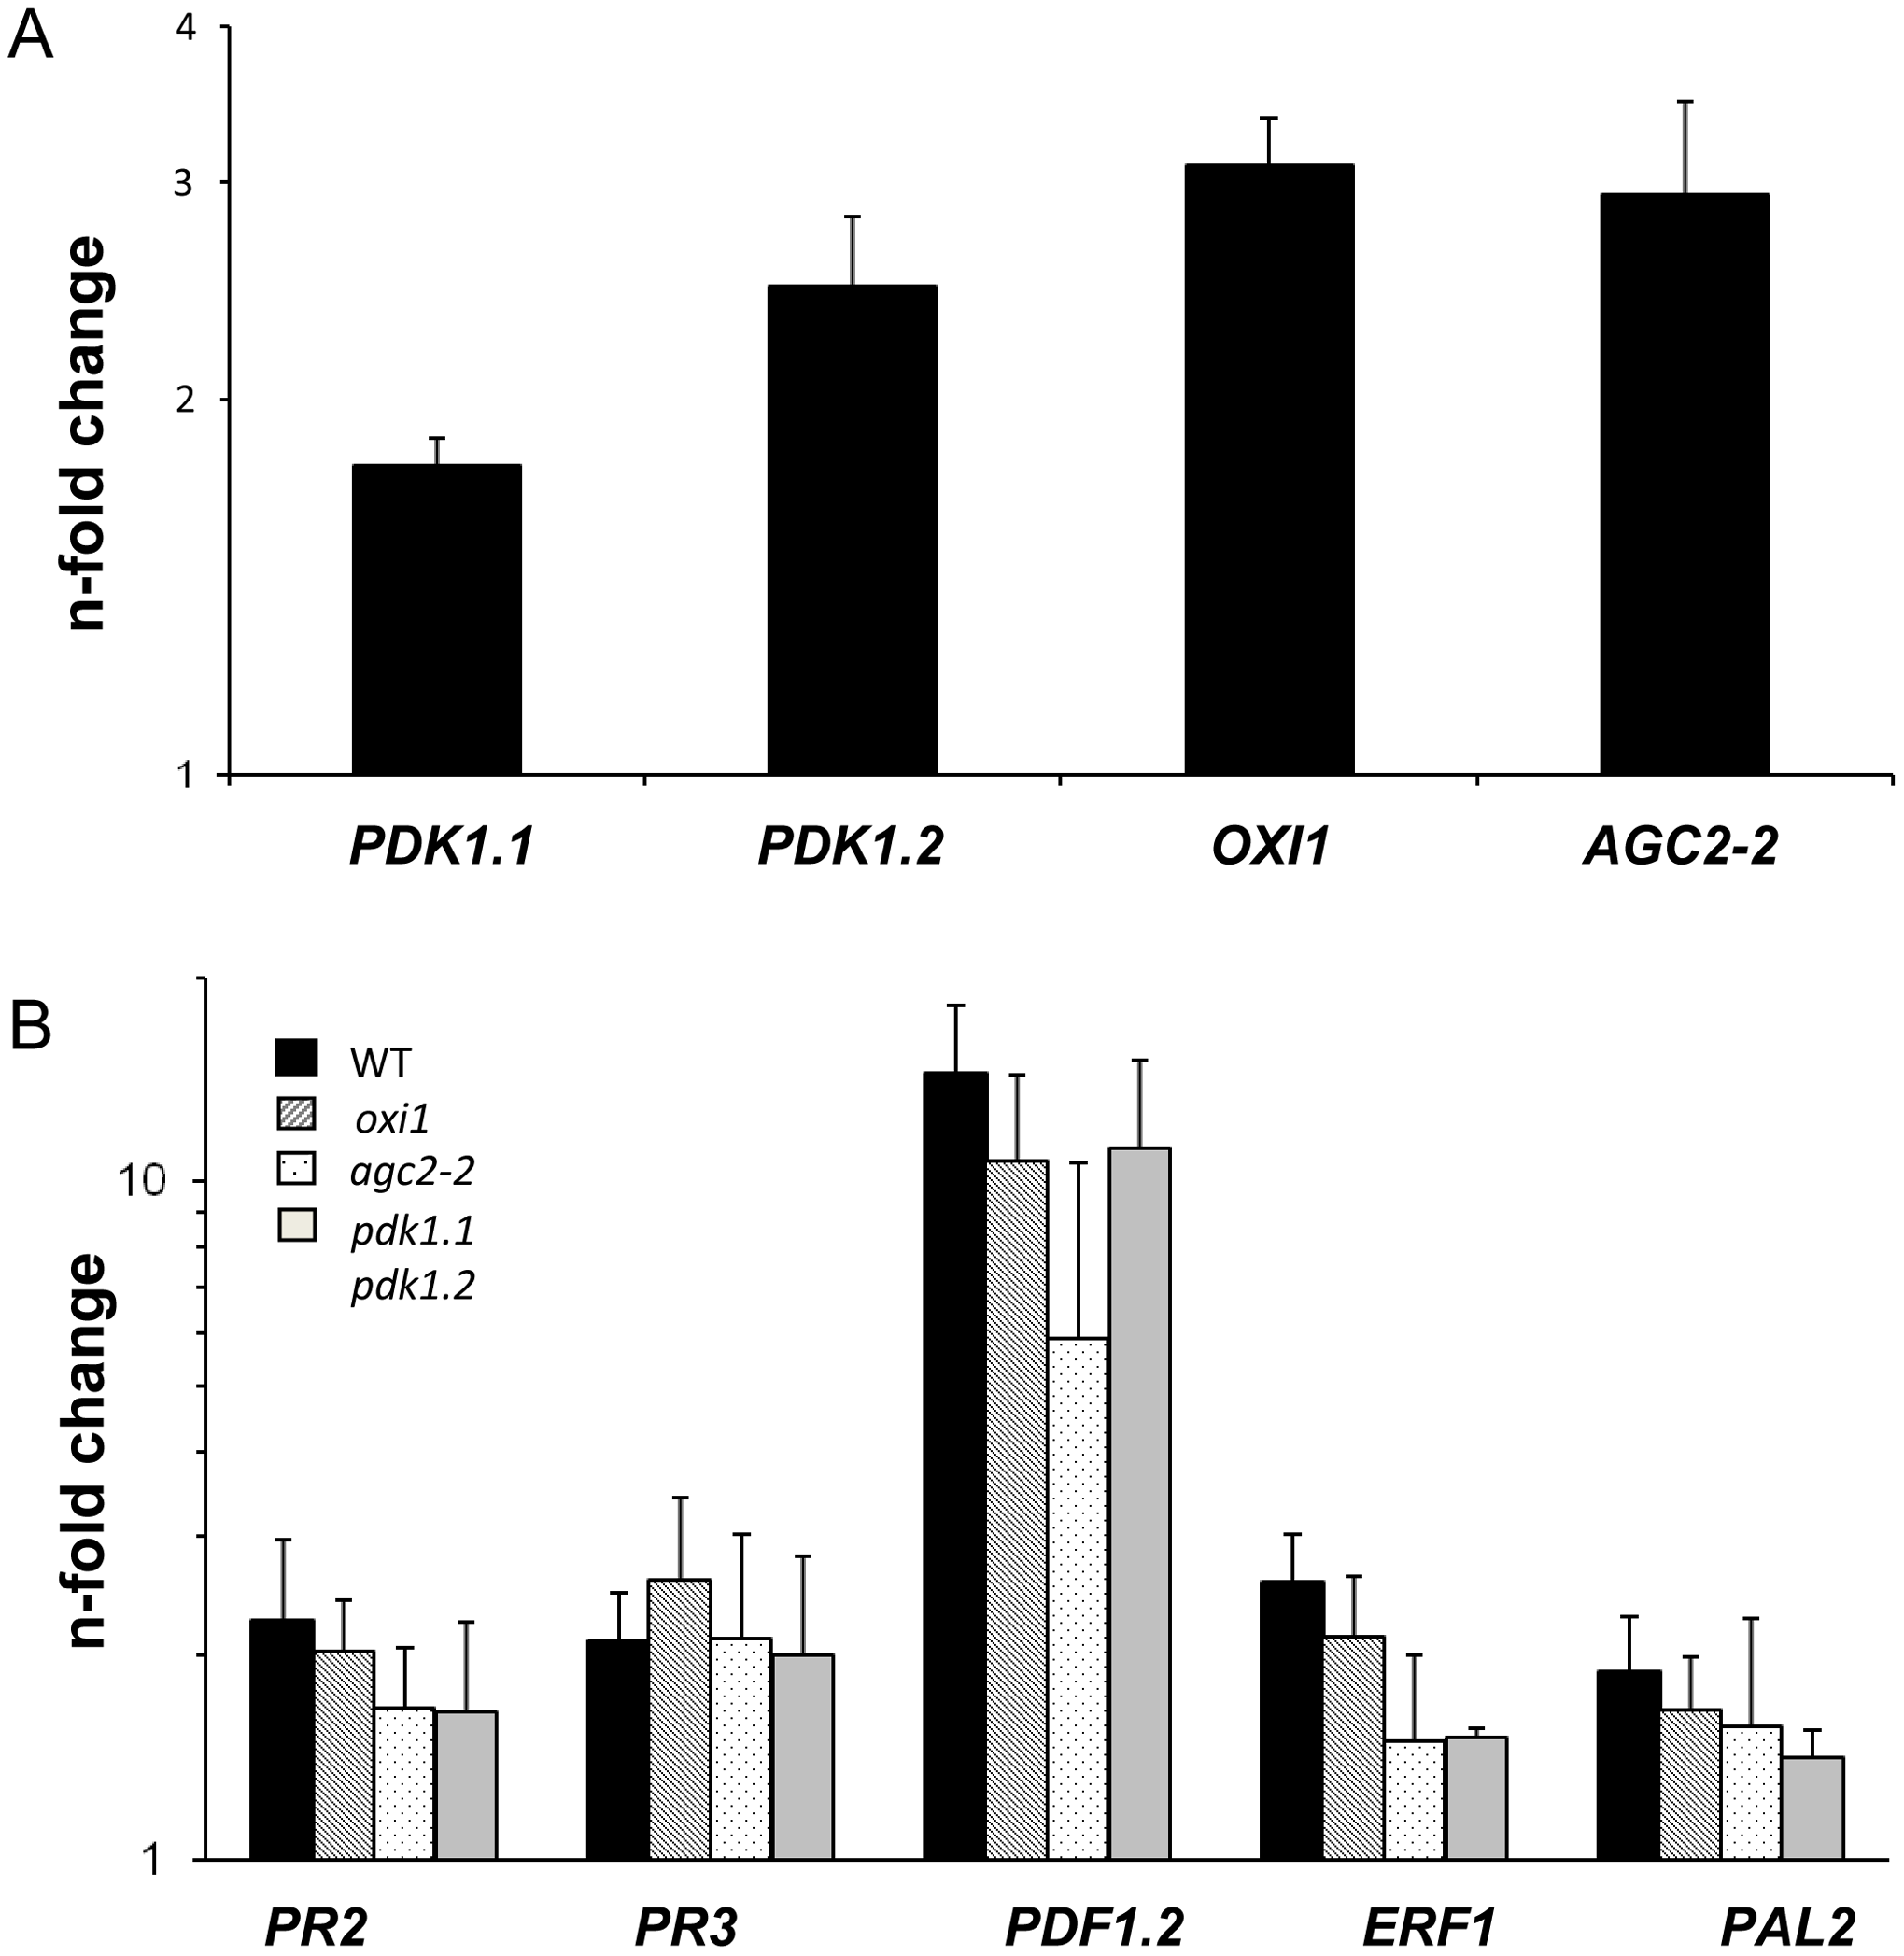 Expression levels of <i>PDK1</i>, <i>OXI1</i> and <i>AGC2-2</i> genes and defense genes after treatment with a high dosis of <i>P. indica</i> (for details, cf. <em class=&quot;ref&quot;>Methods and Materials</em> and Figure S4A,B in <em class=&quot;ref&quot;>Text S1</em>).